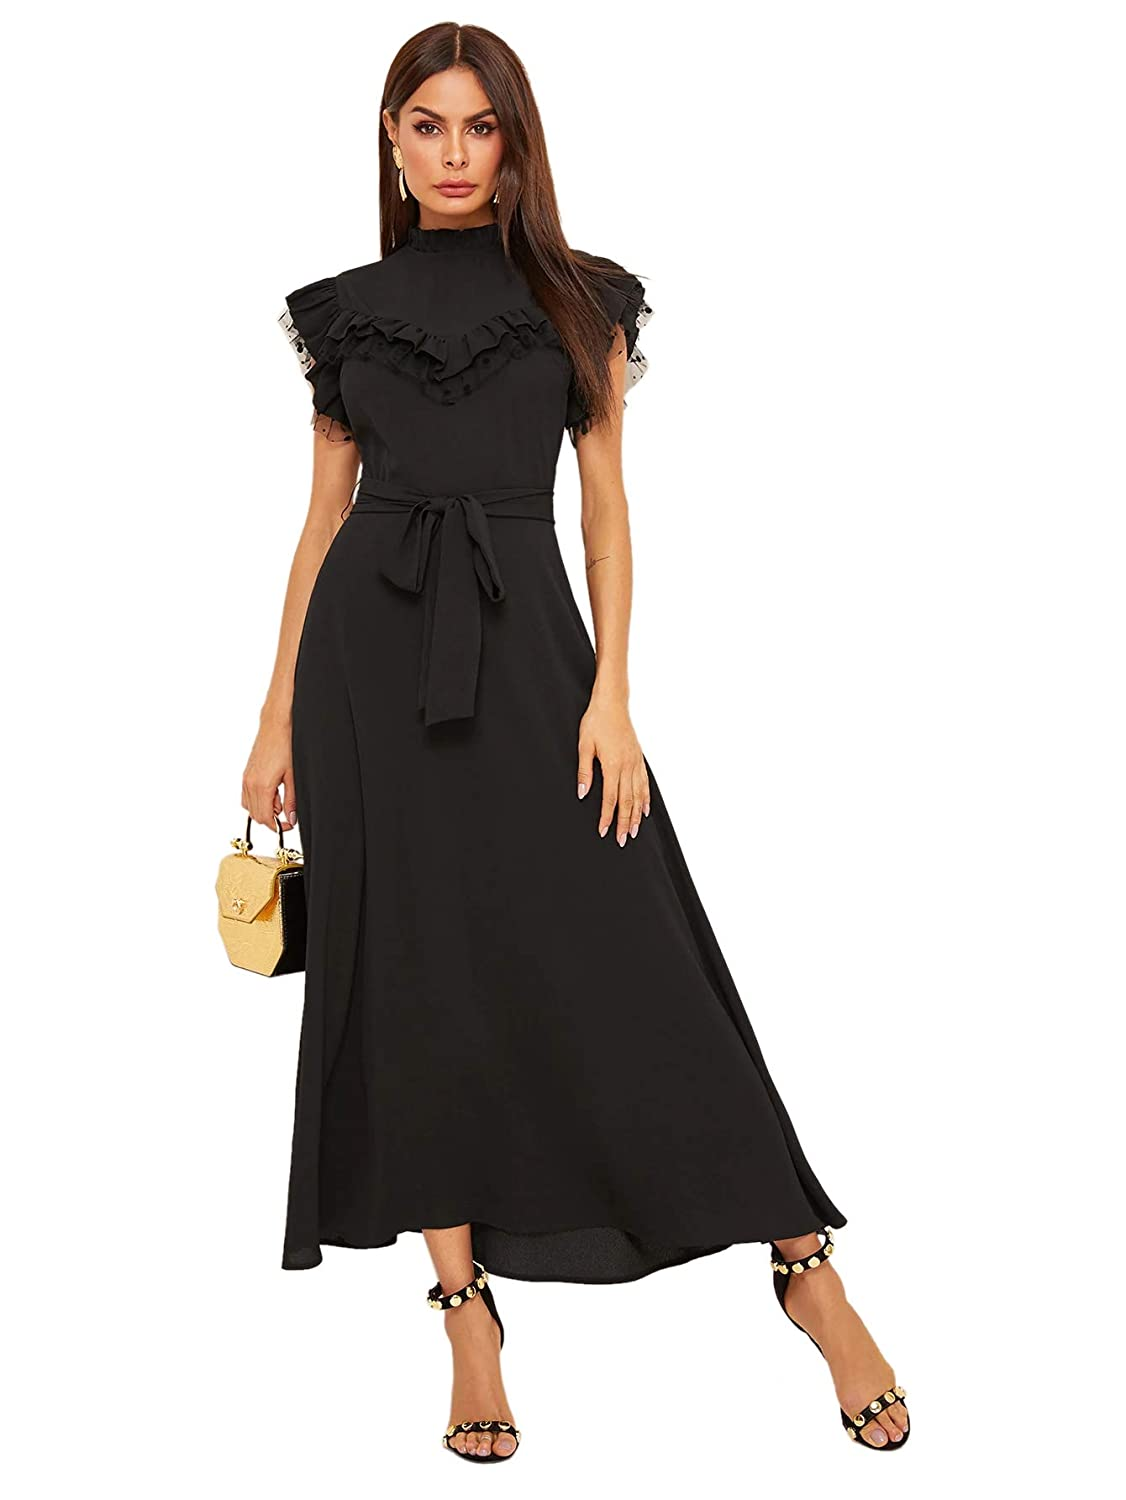 500 Vintage Style Dresses for Sale | Vintage Inspired Dresses Verdusa Womens Frill Mock Neck Flutter Sleeve Layered Belted Party Maxi Dress $36.99 AT vintagedancer.com